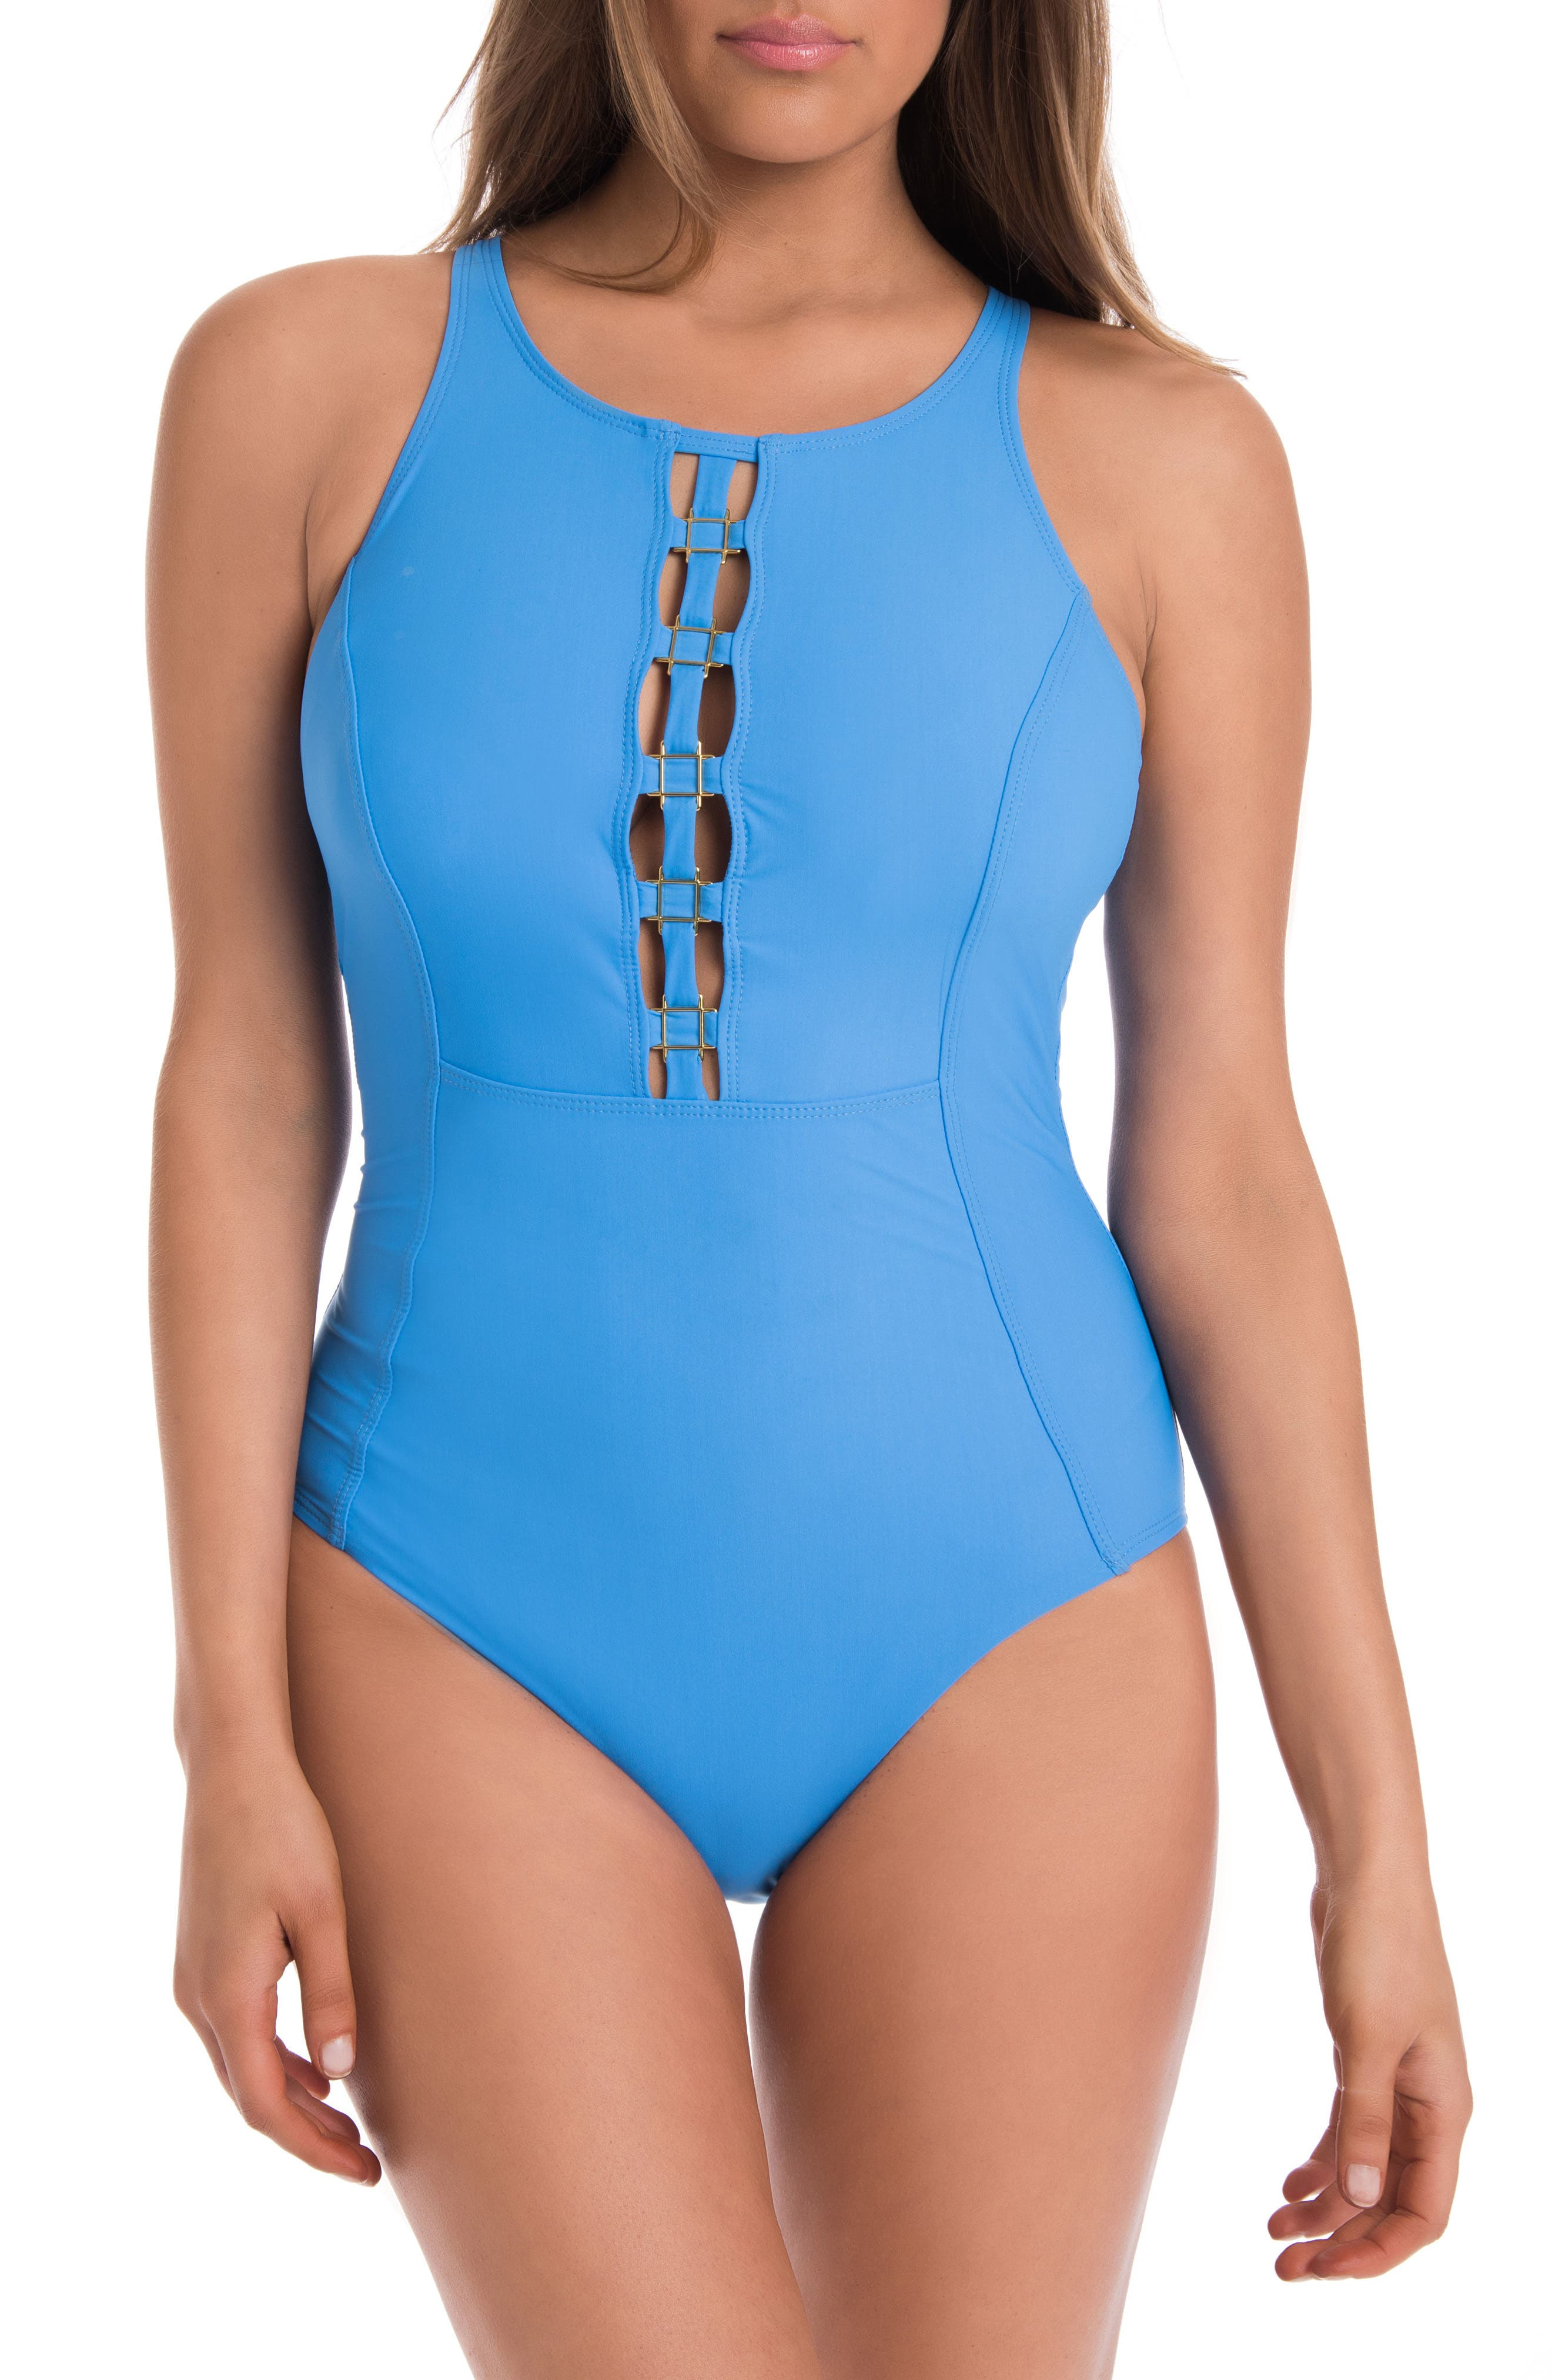 You Only Live Twice Sonder One-Piece Swimsuit,                             Main thumbnail 1, color,                             453